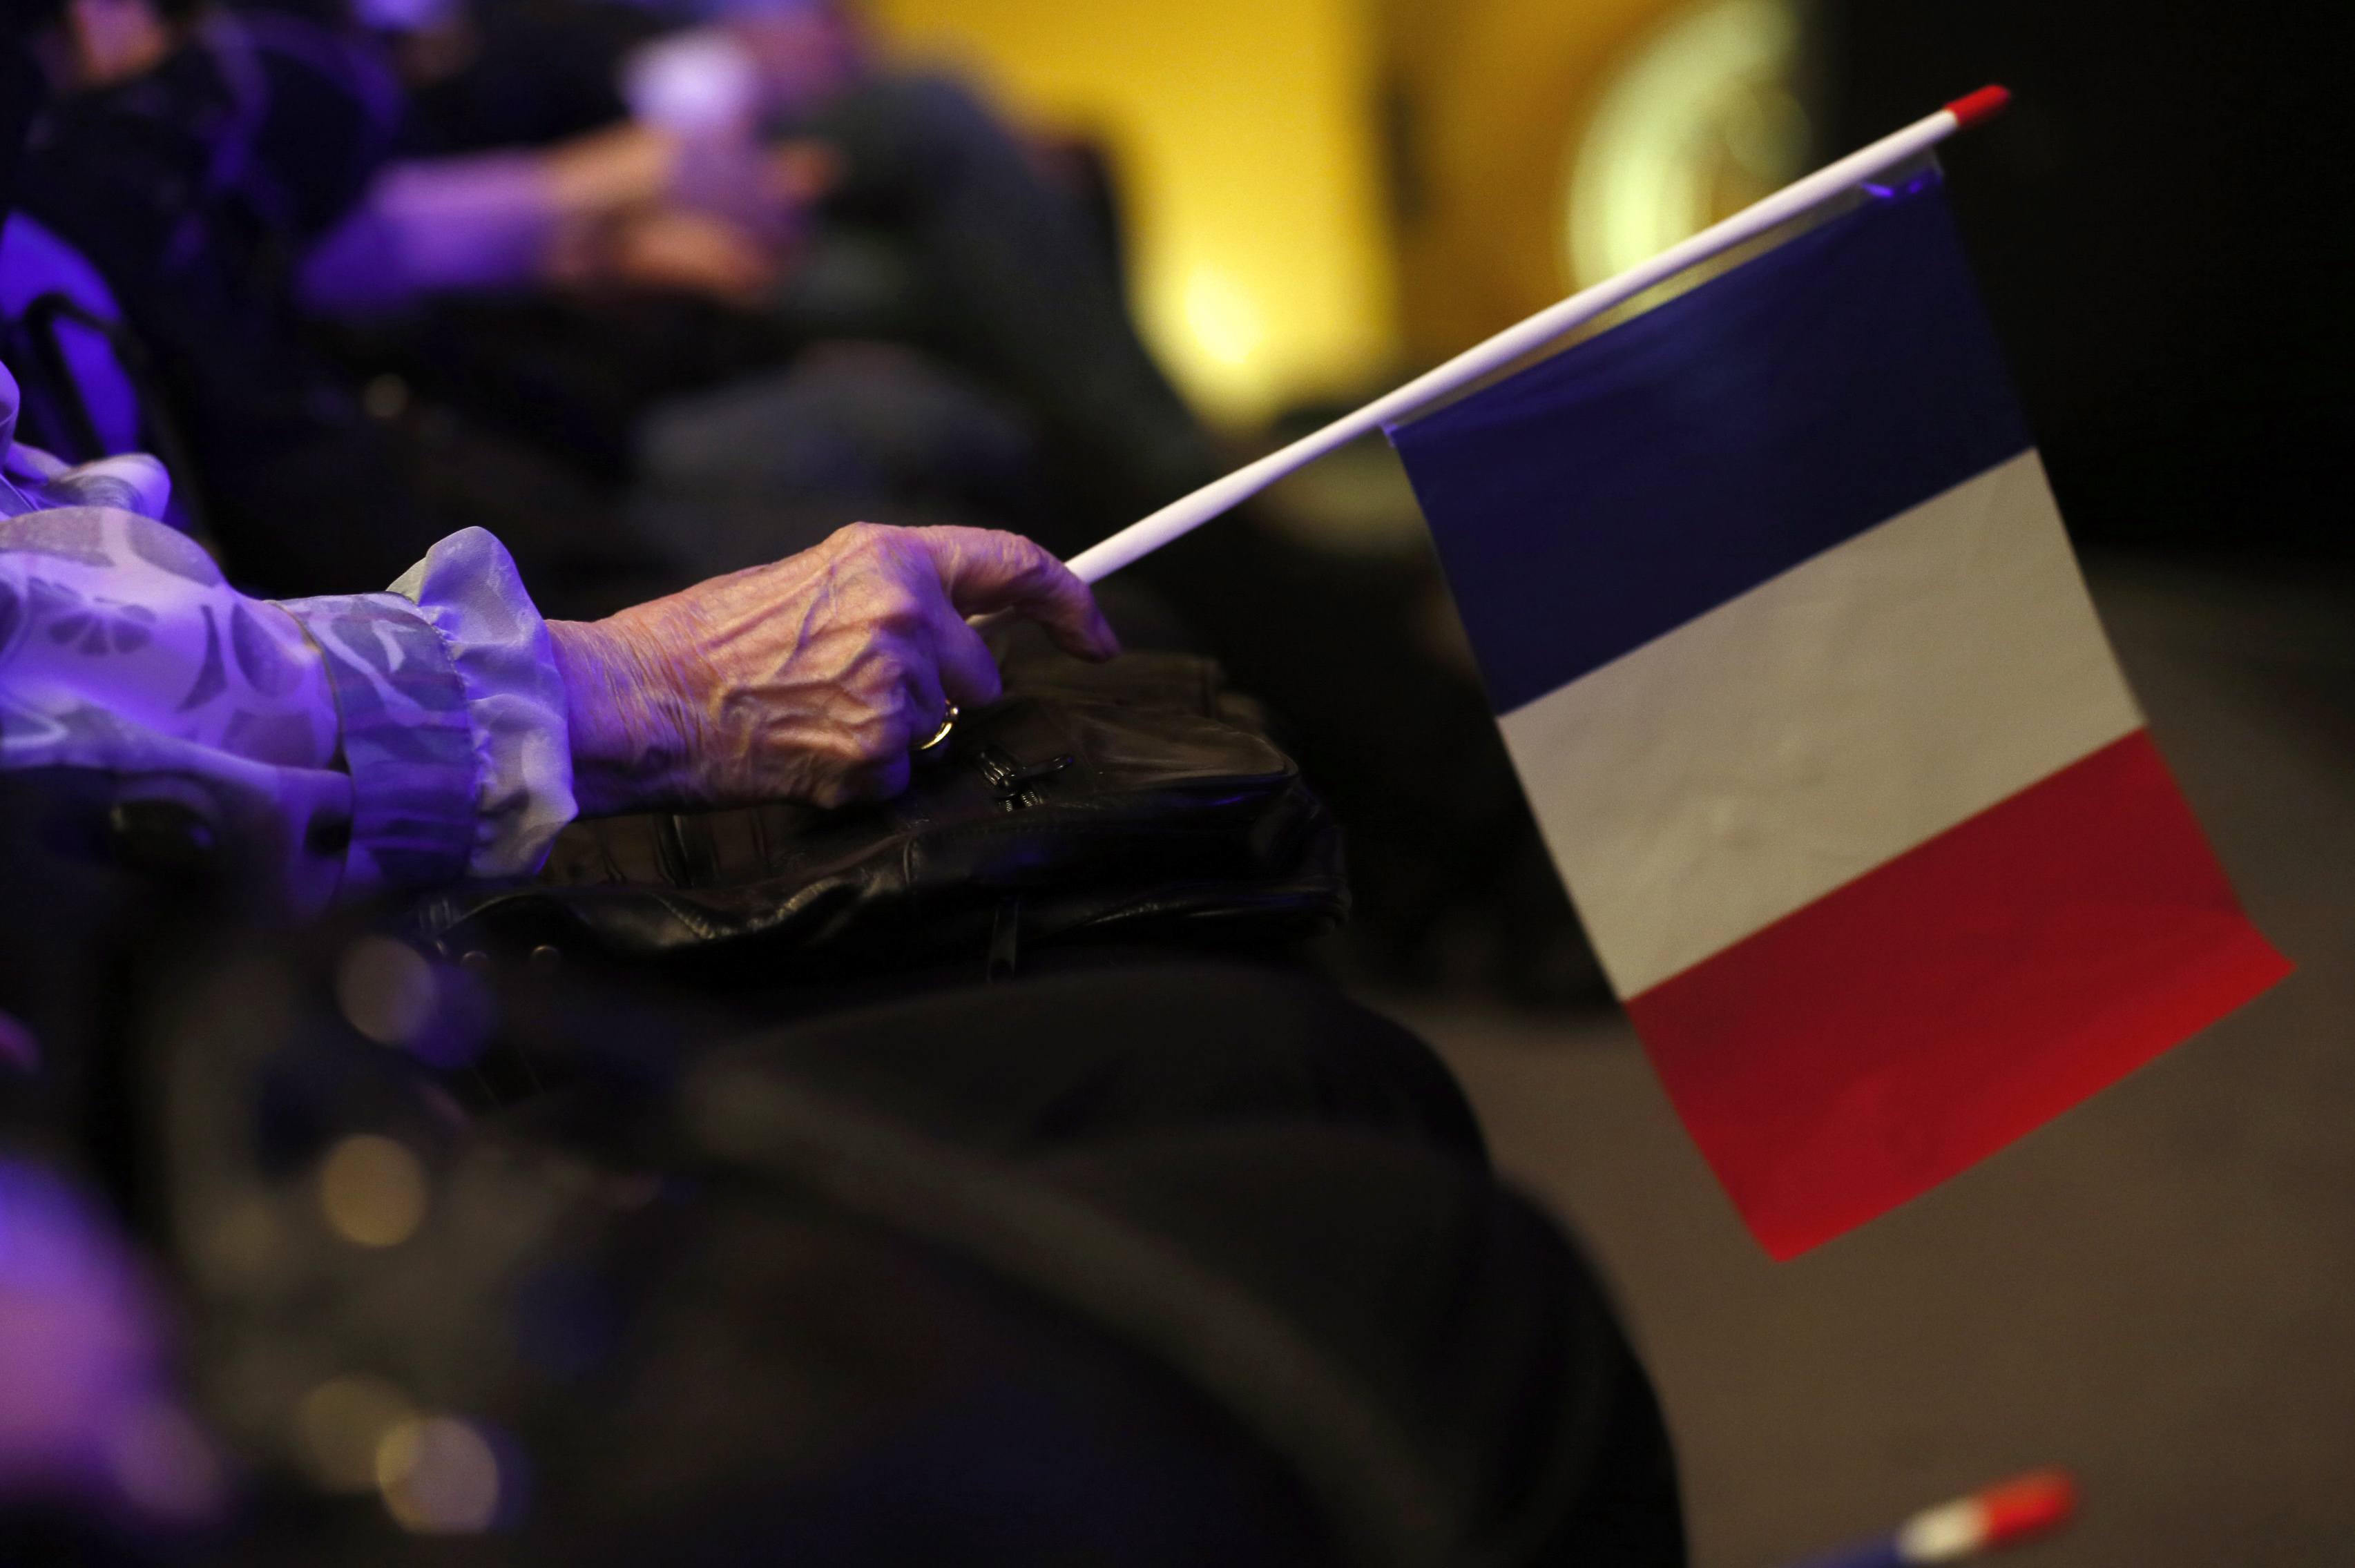 Europe votes: France's atomized politics and vaporized influence